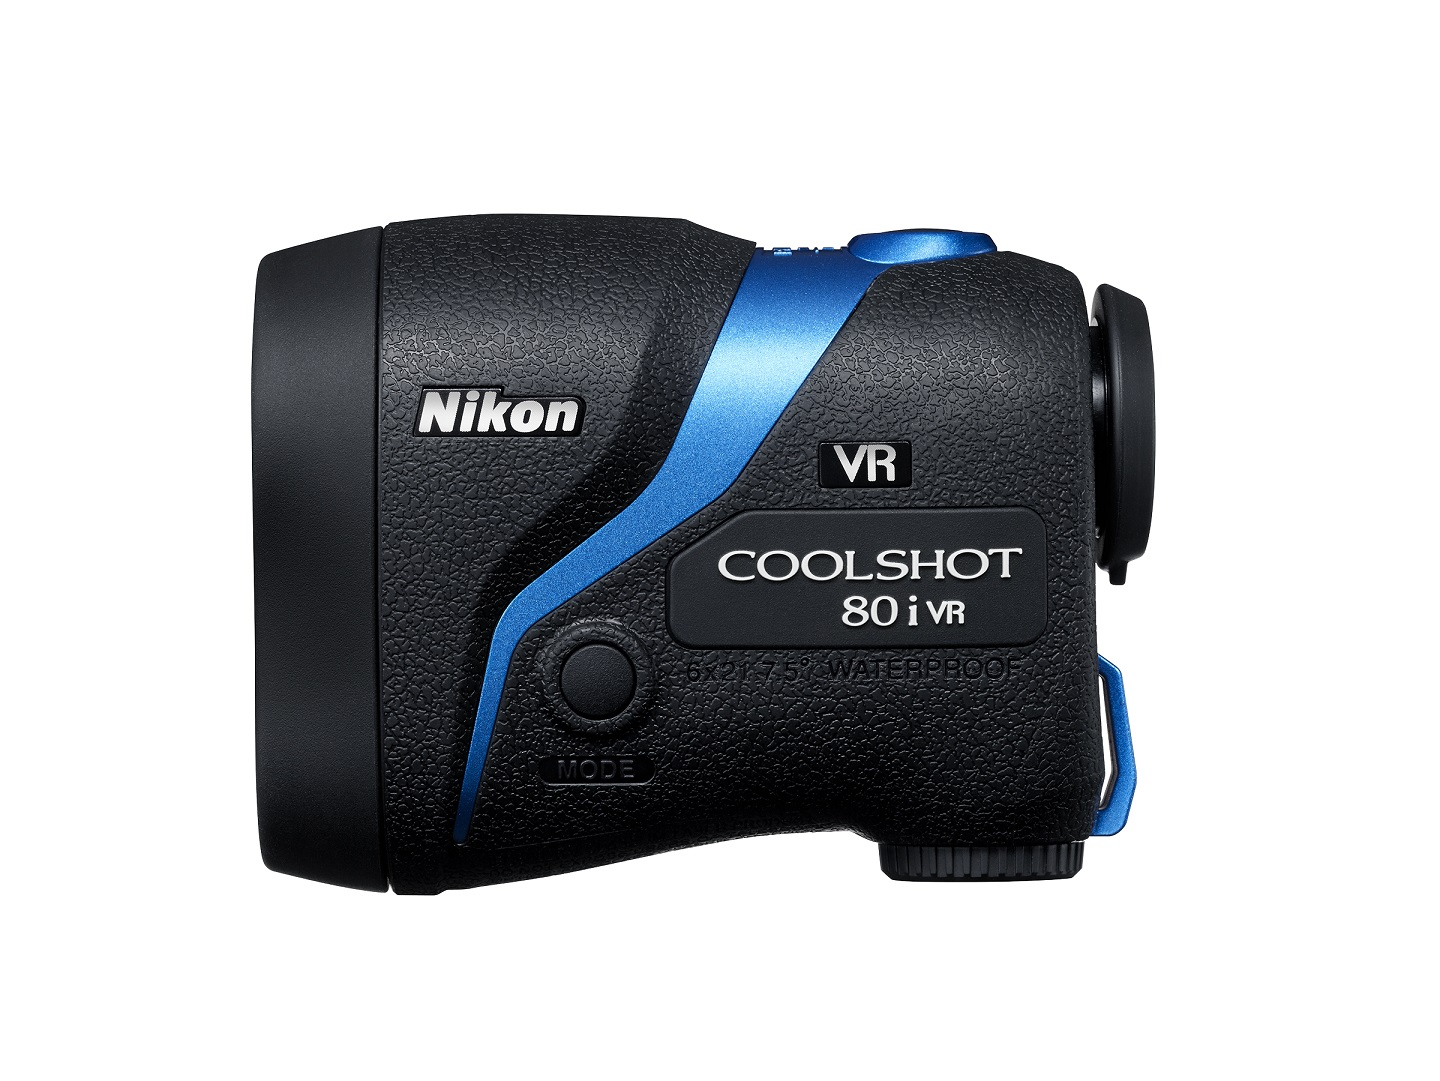 nikon_coolshot-80i-vr_right-side